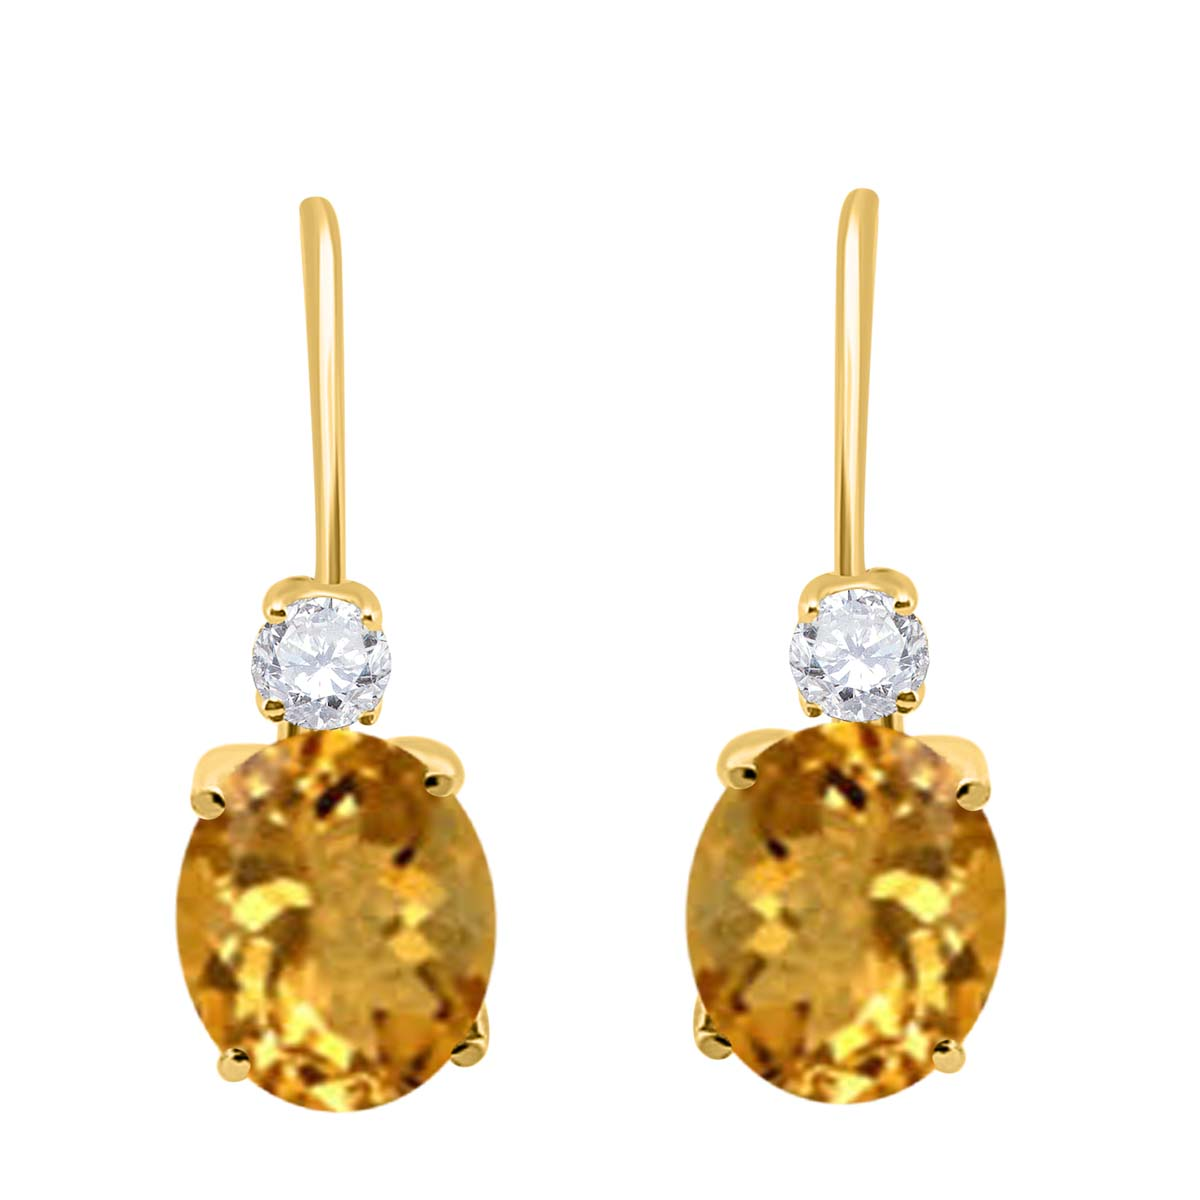 2.7 Carat 8×6 Gemstone And Diamond Leverback Earrings sets for girls or Women Citrine 14K Yellow Gold 4 Prong-Setting Oval adultsthis is the lovely gift for anniversary